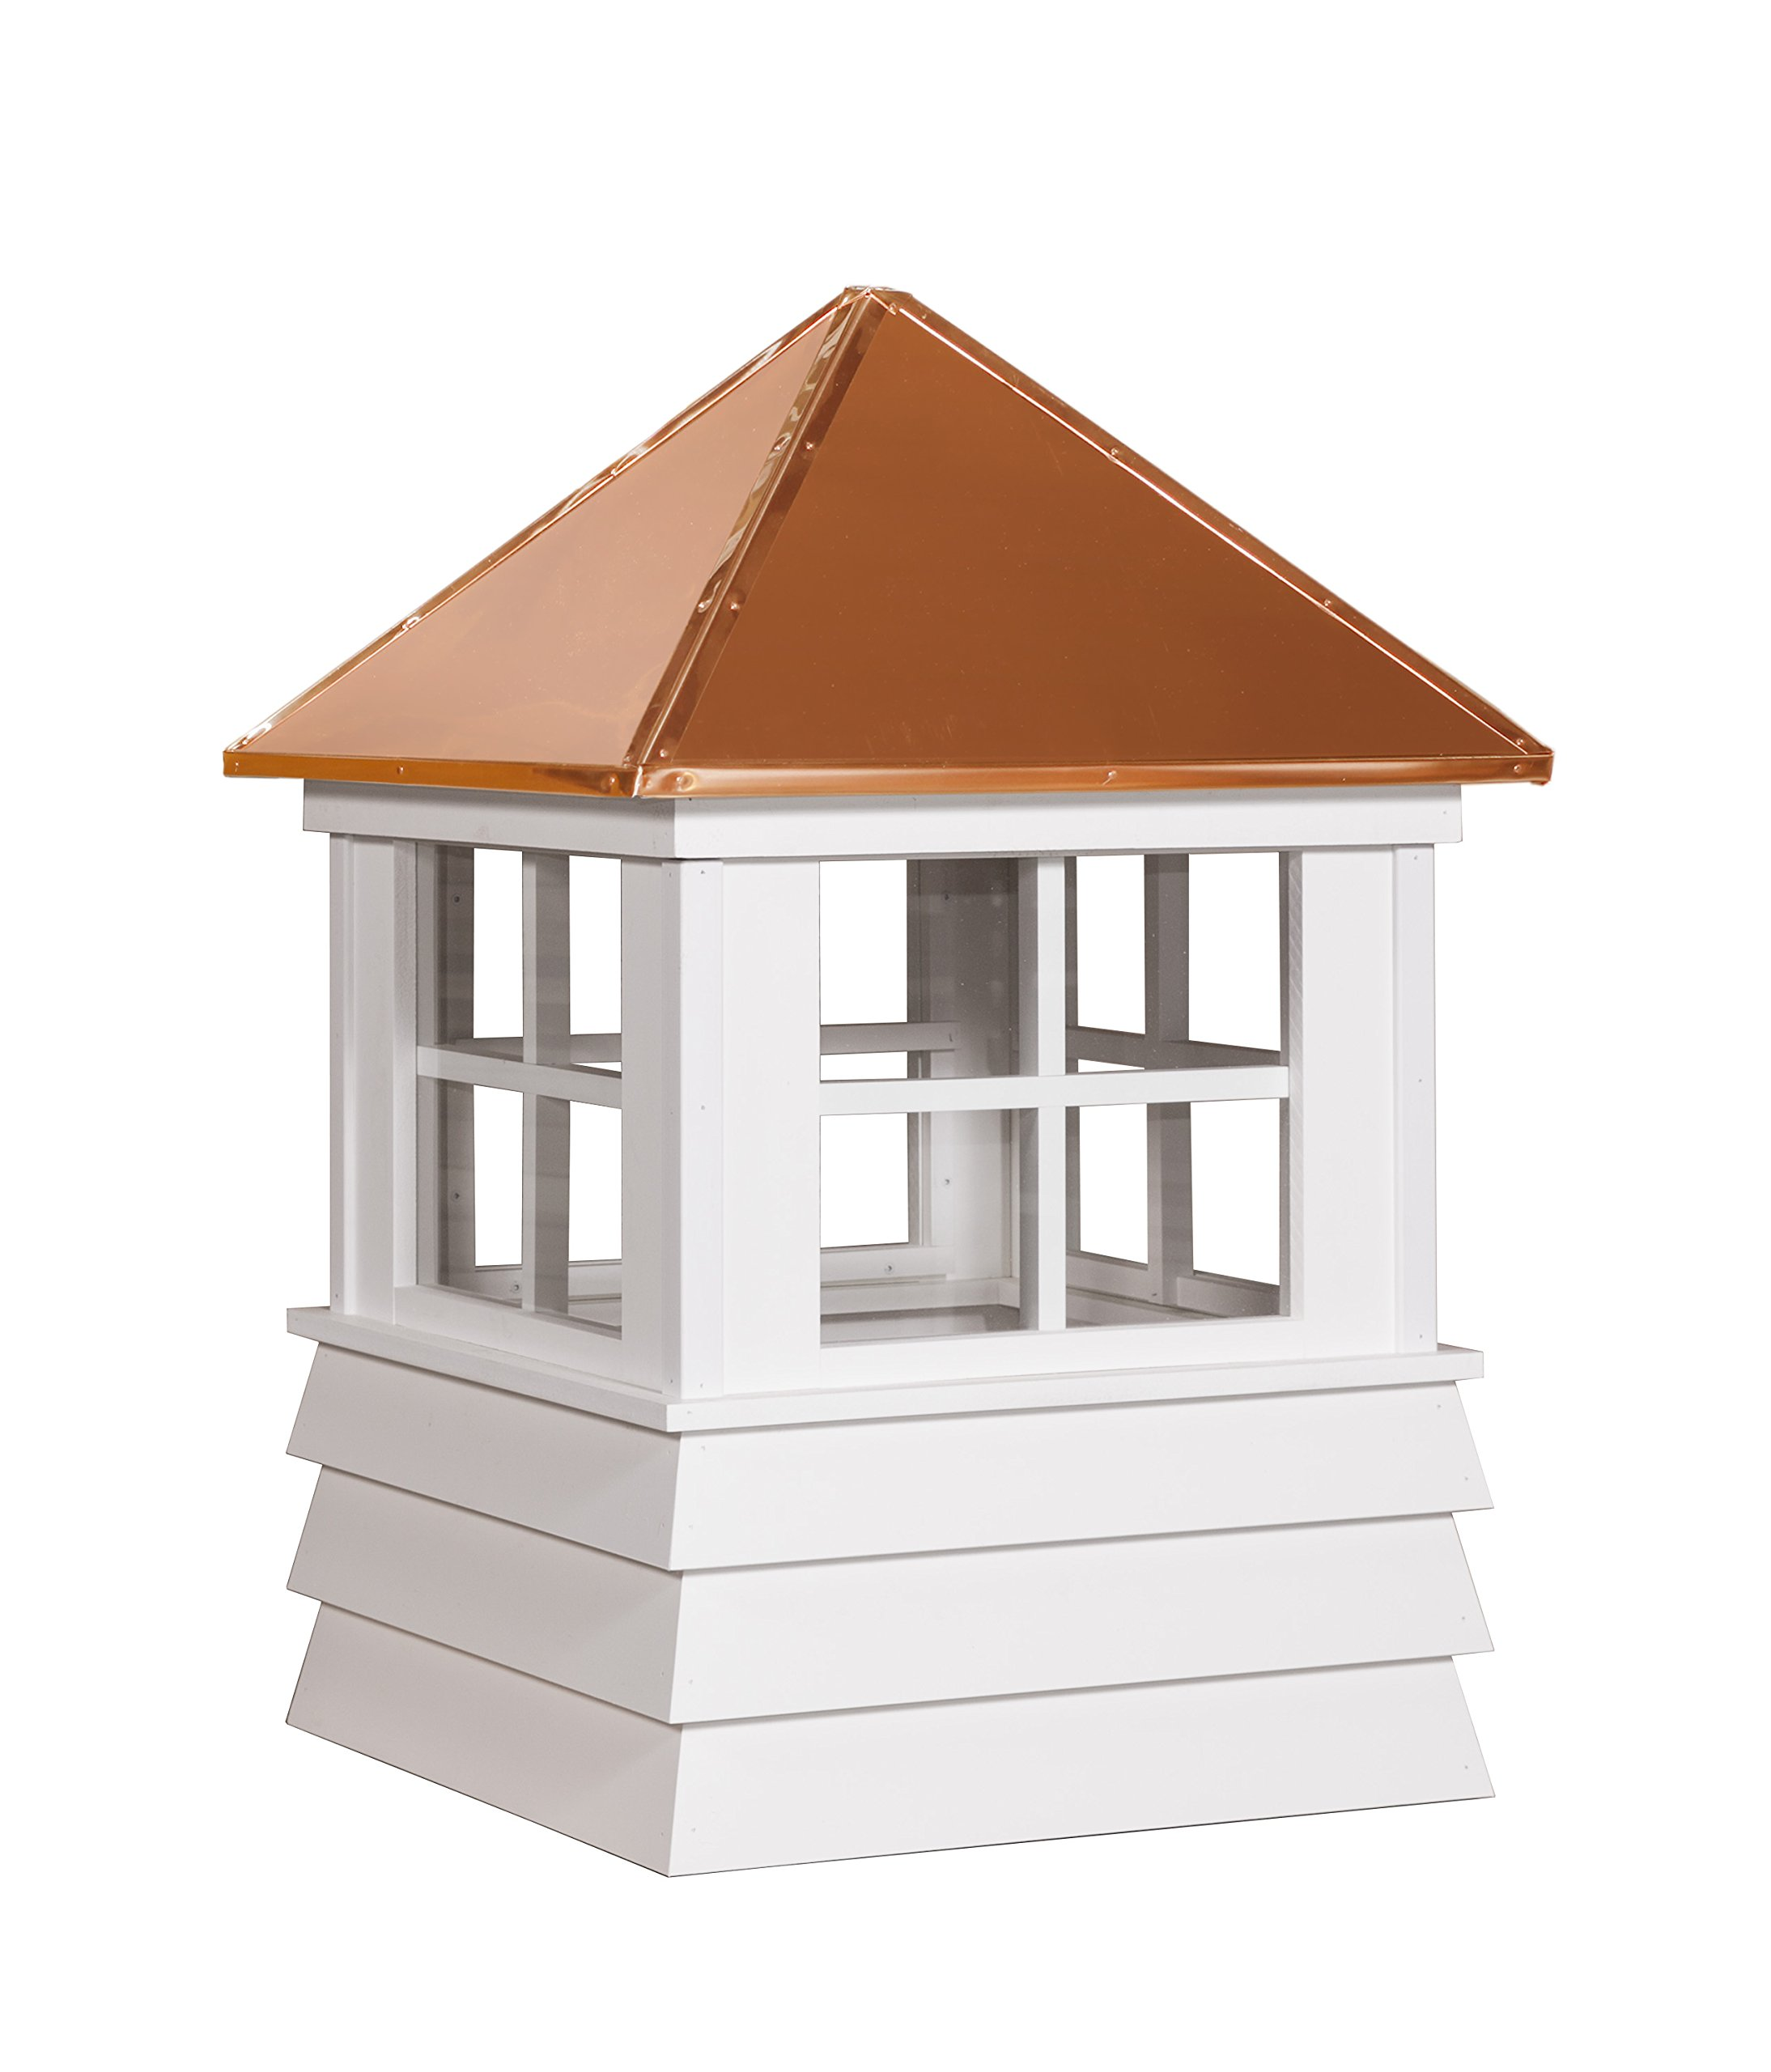 East Coast Weathervanes and Cupolas Vinyl Somerset Cupola (Vinyl, 21 in square x 33 in tall)